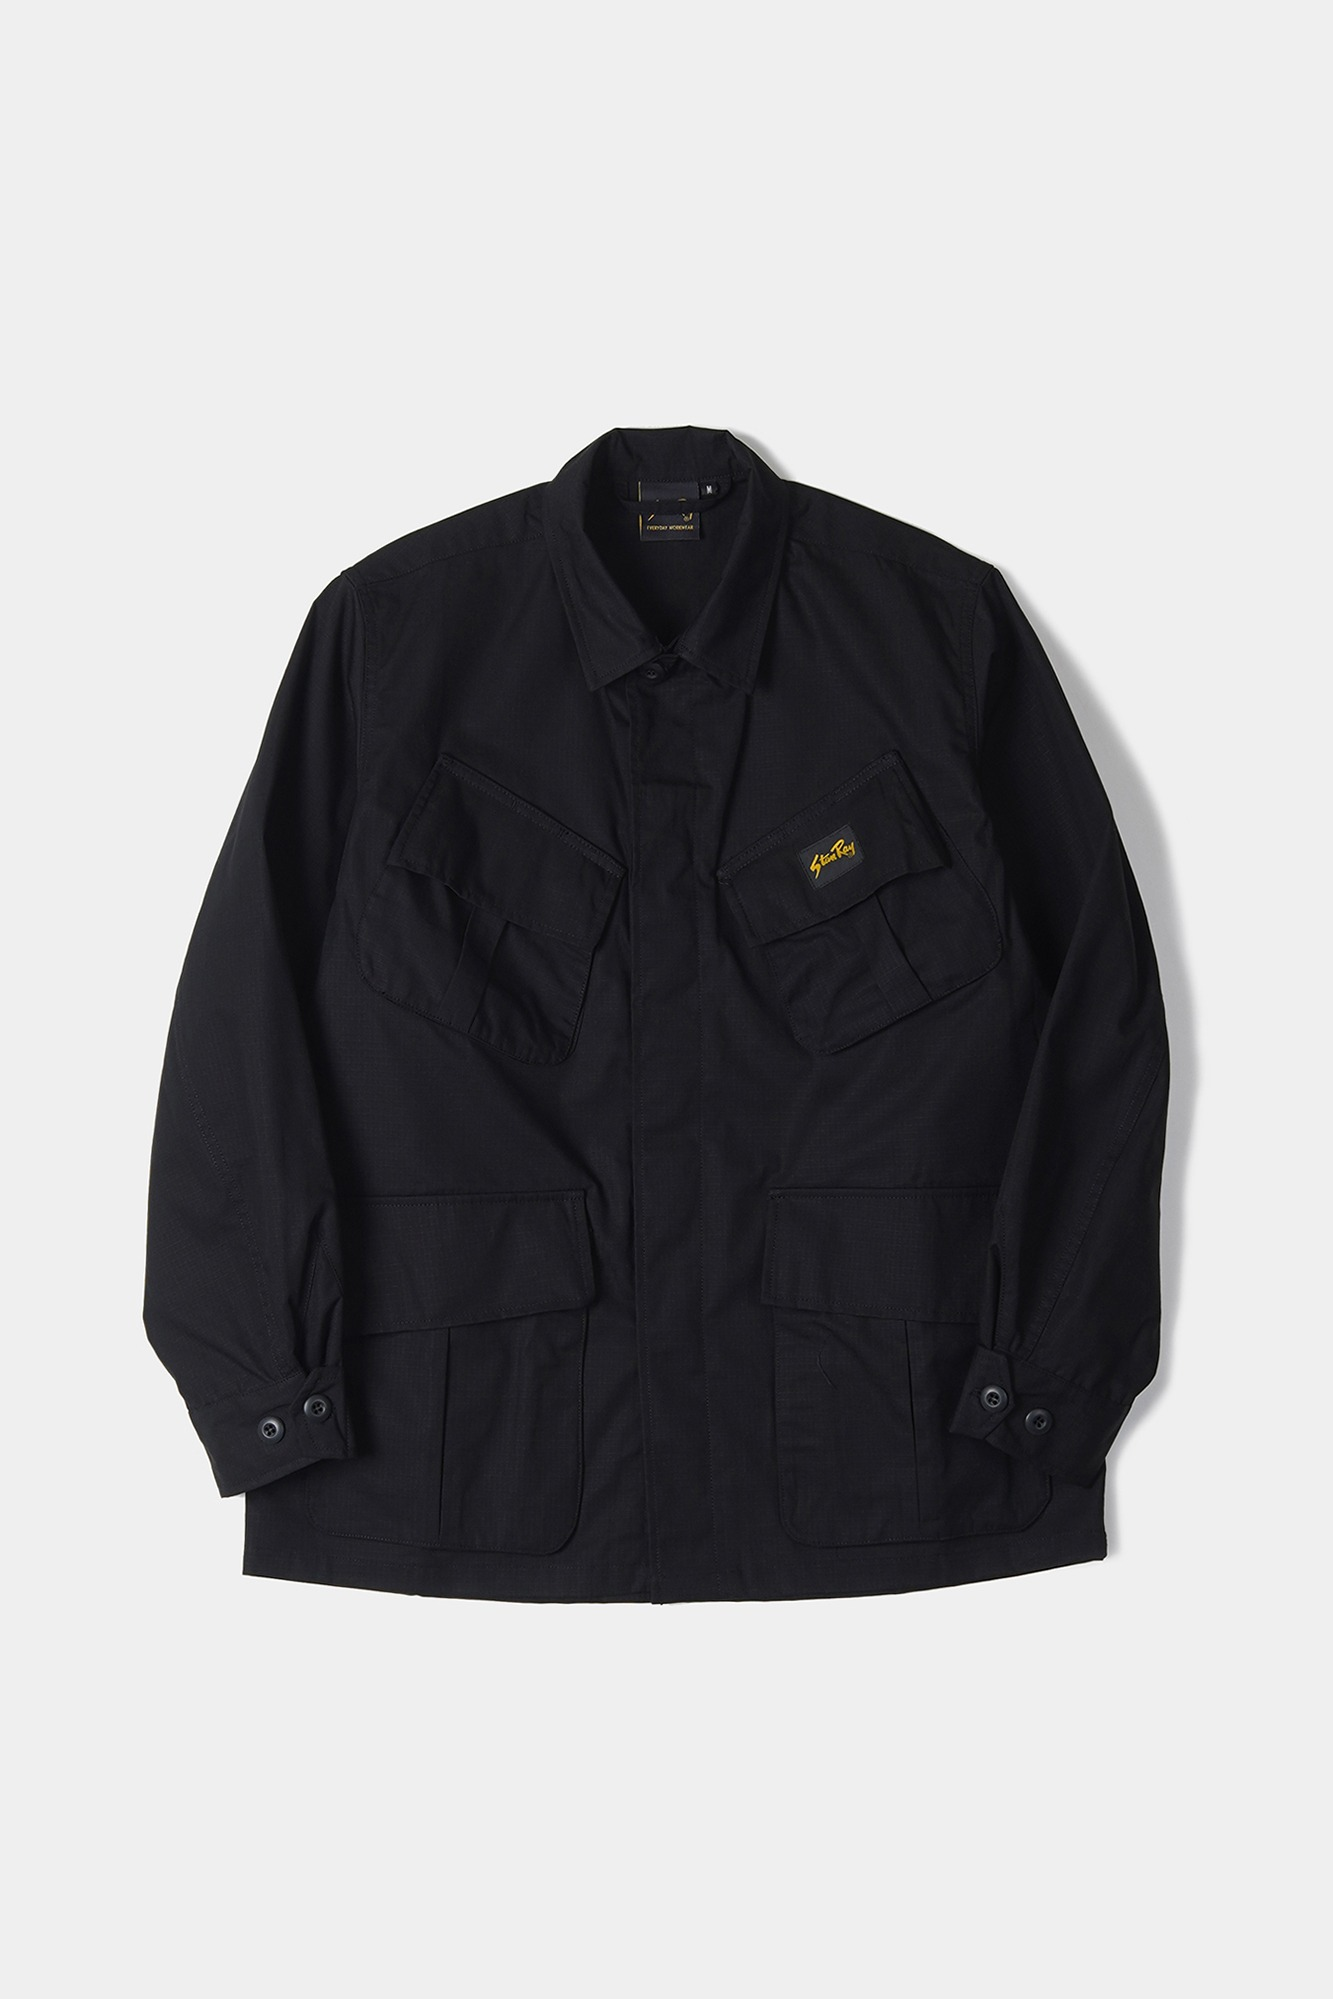 "STAN RAY Tropical Jacket ""Black NYCO"""